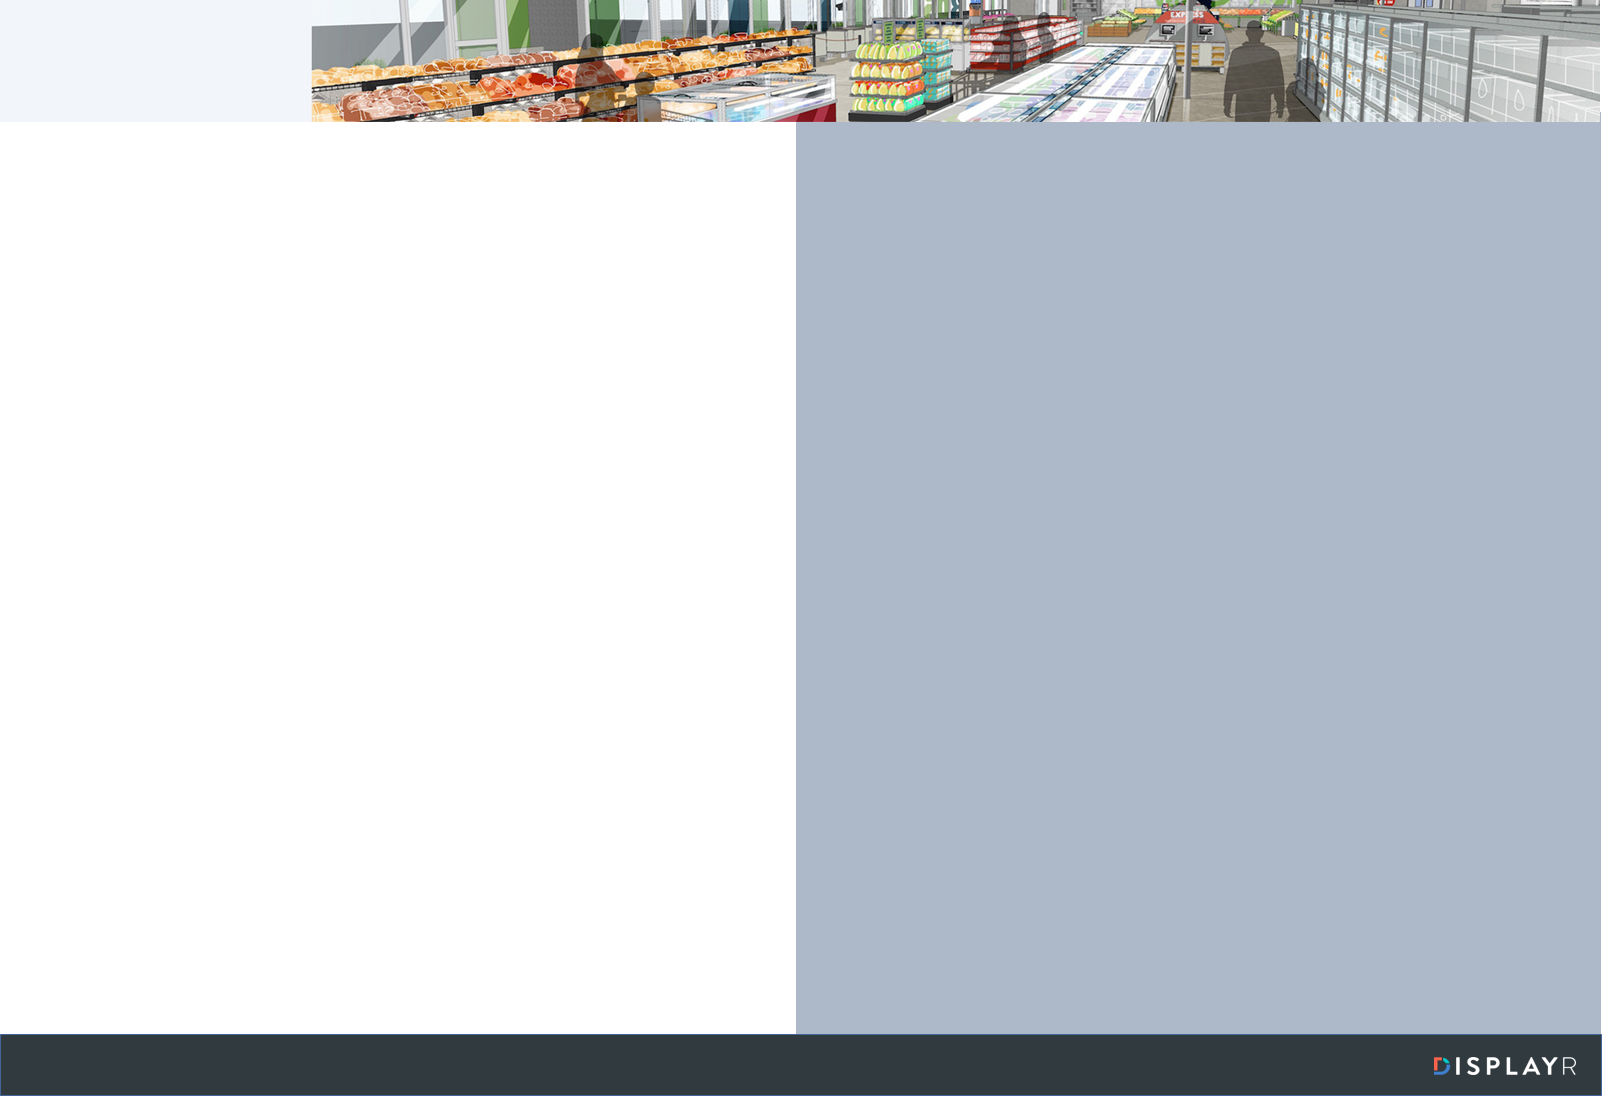 ShoppingBackground.png